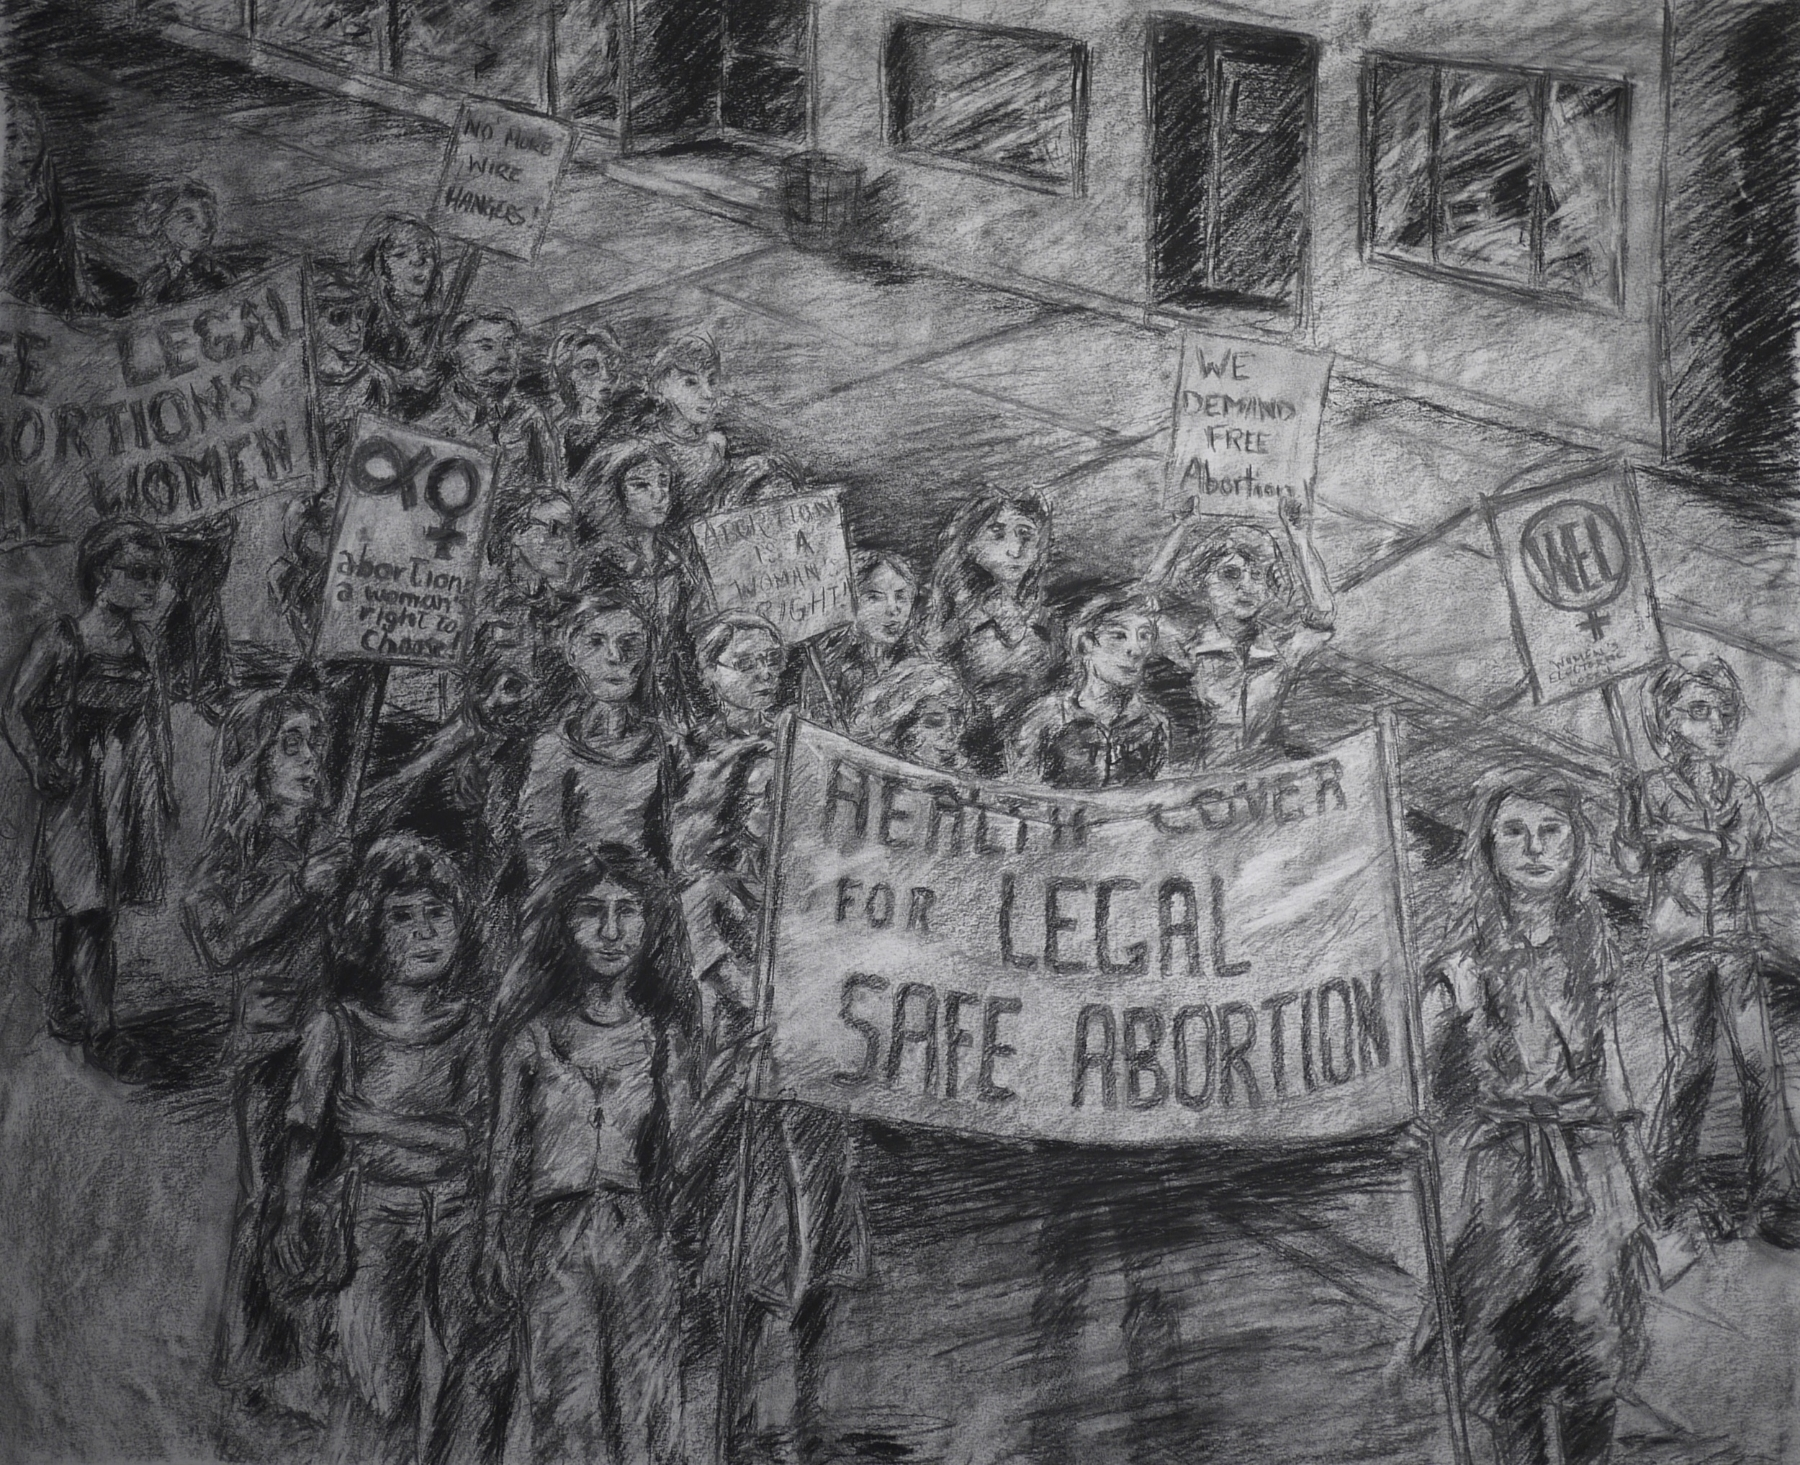 From the '70s till Now: The Fight For Abortion Rights, 1/4